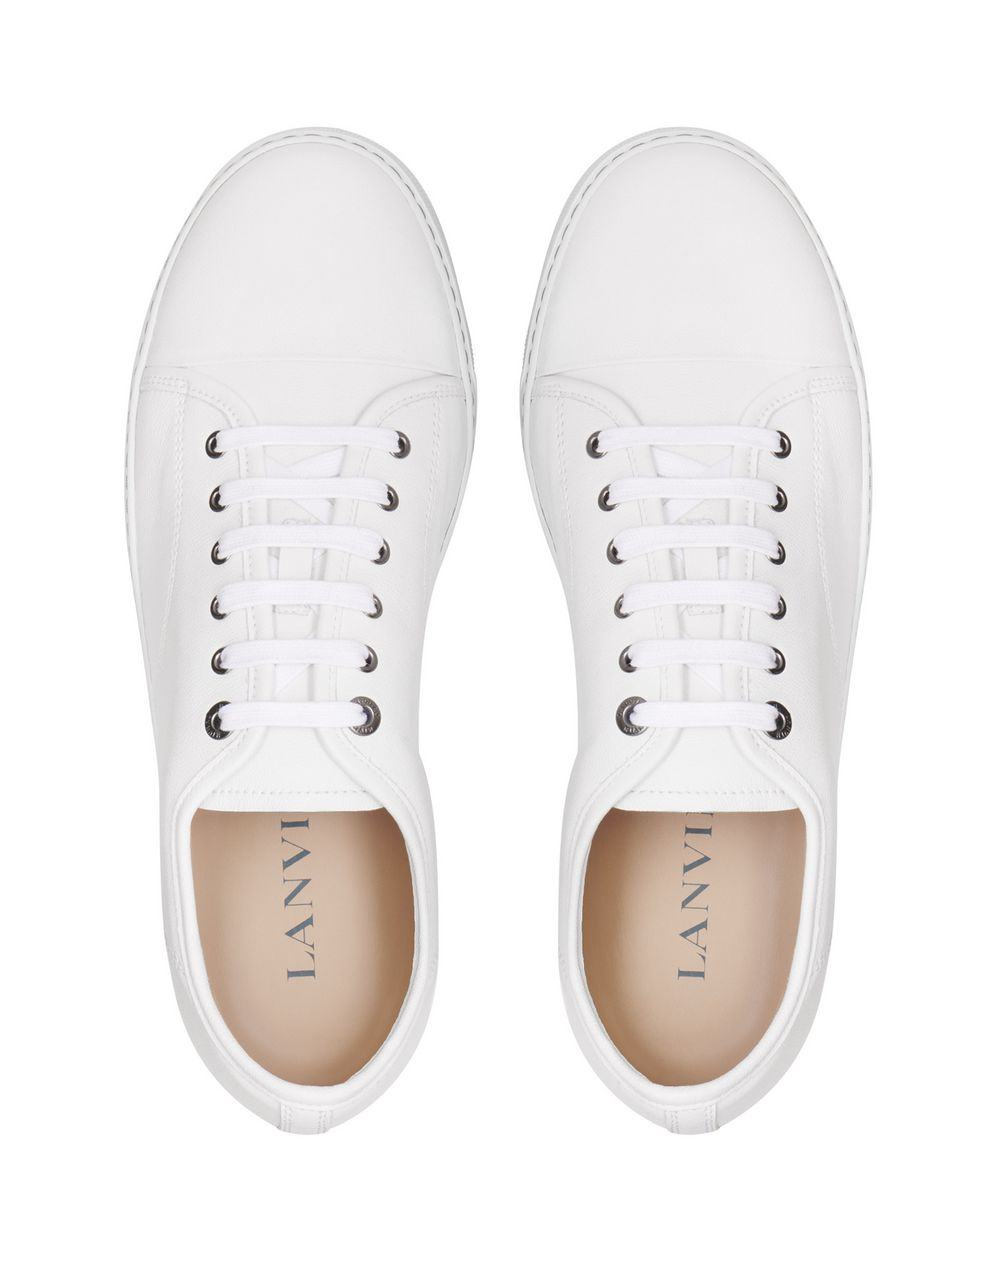 DDB1 GRAINED LEATHER TRAINERS - Lanvin